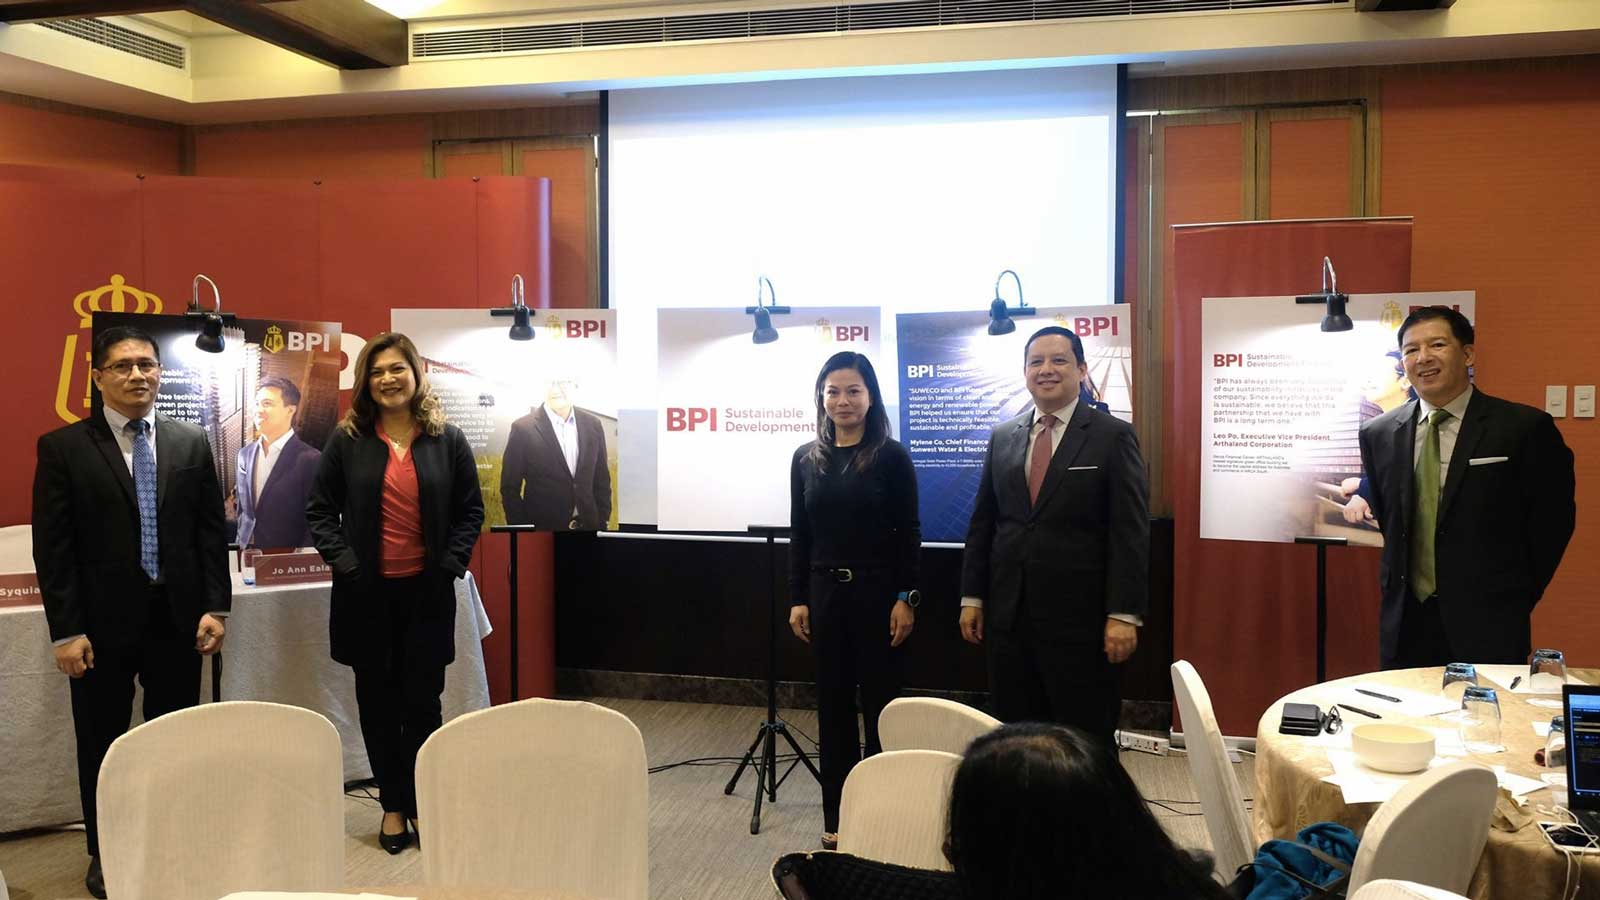 Award-giving bodies recognize BPI for sustainability, environmental responsibility